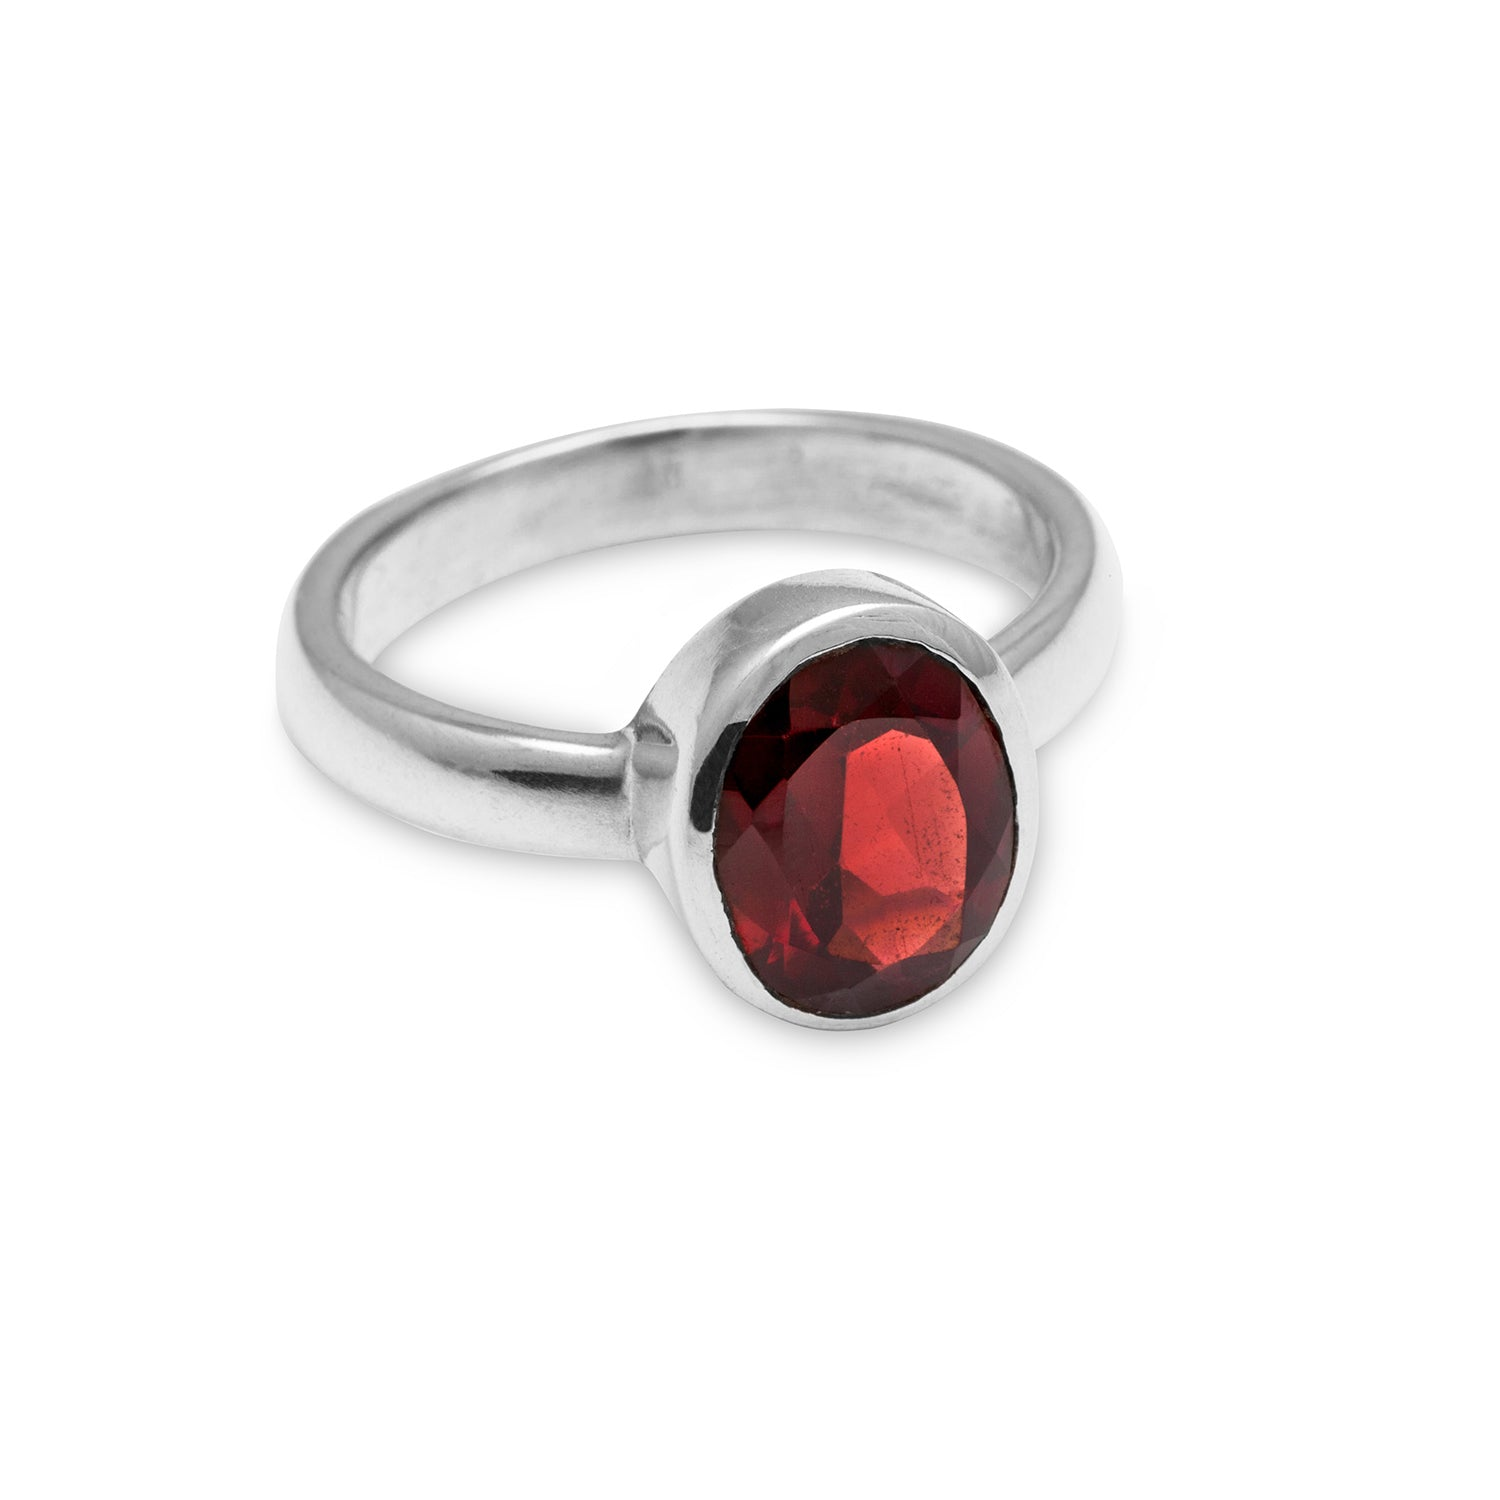 Facetted Garnet Ring